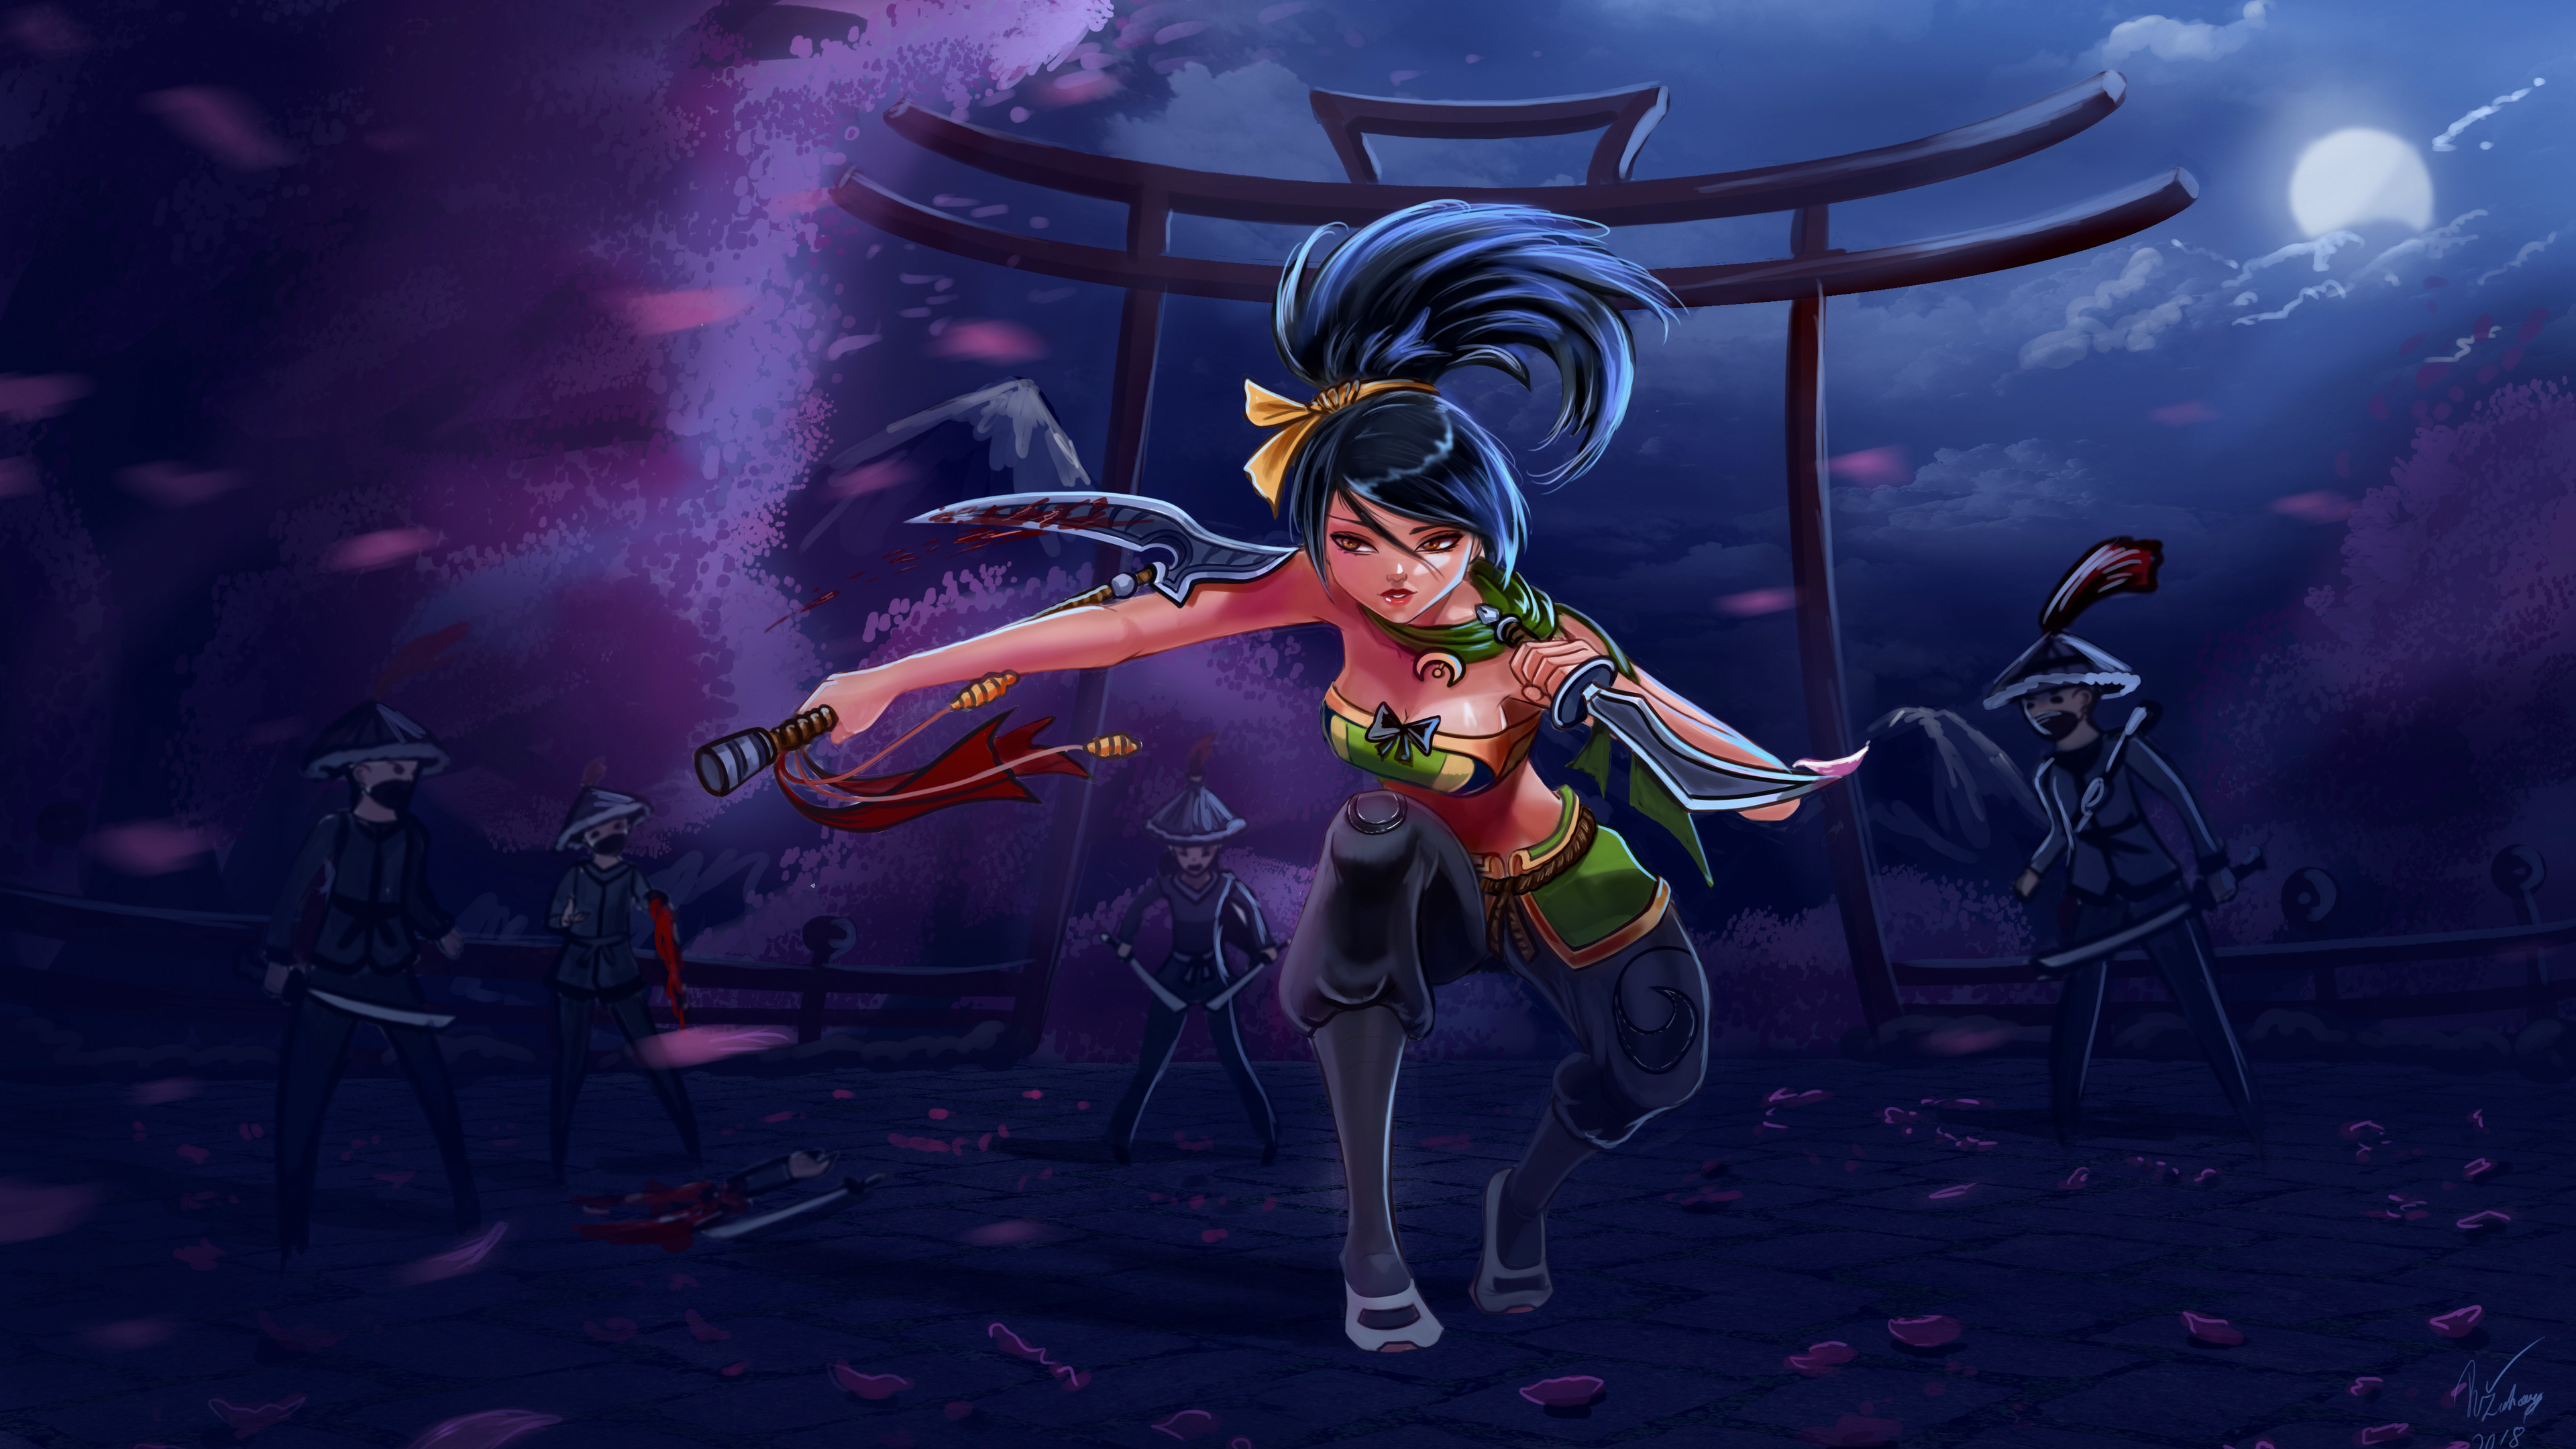 Wallpapers 4k Akali League Of Legends Game 4k